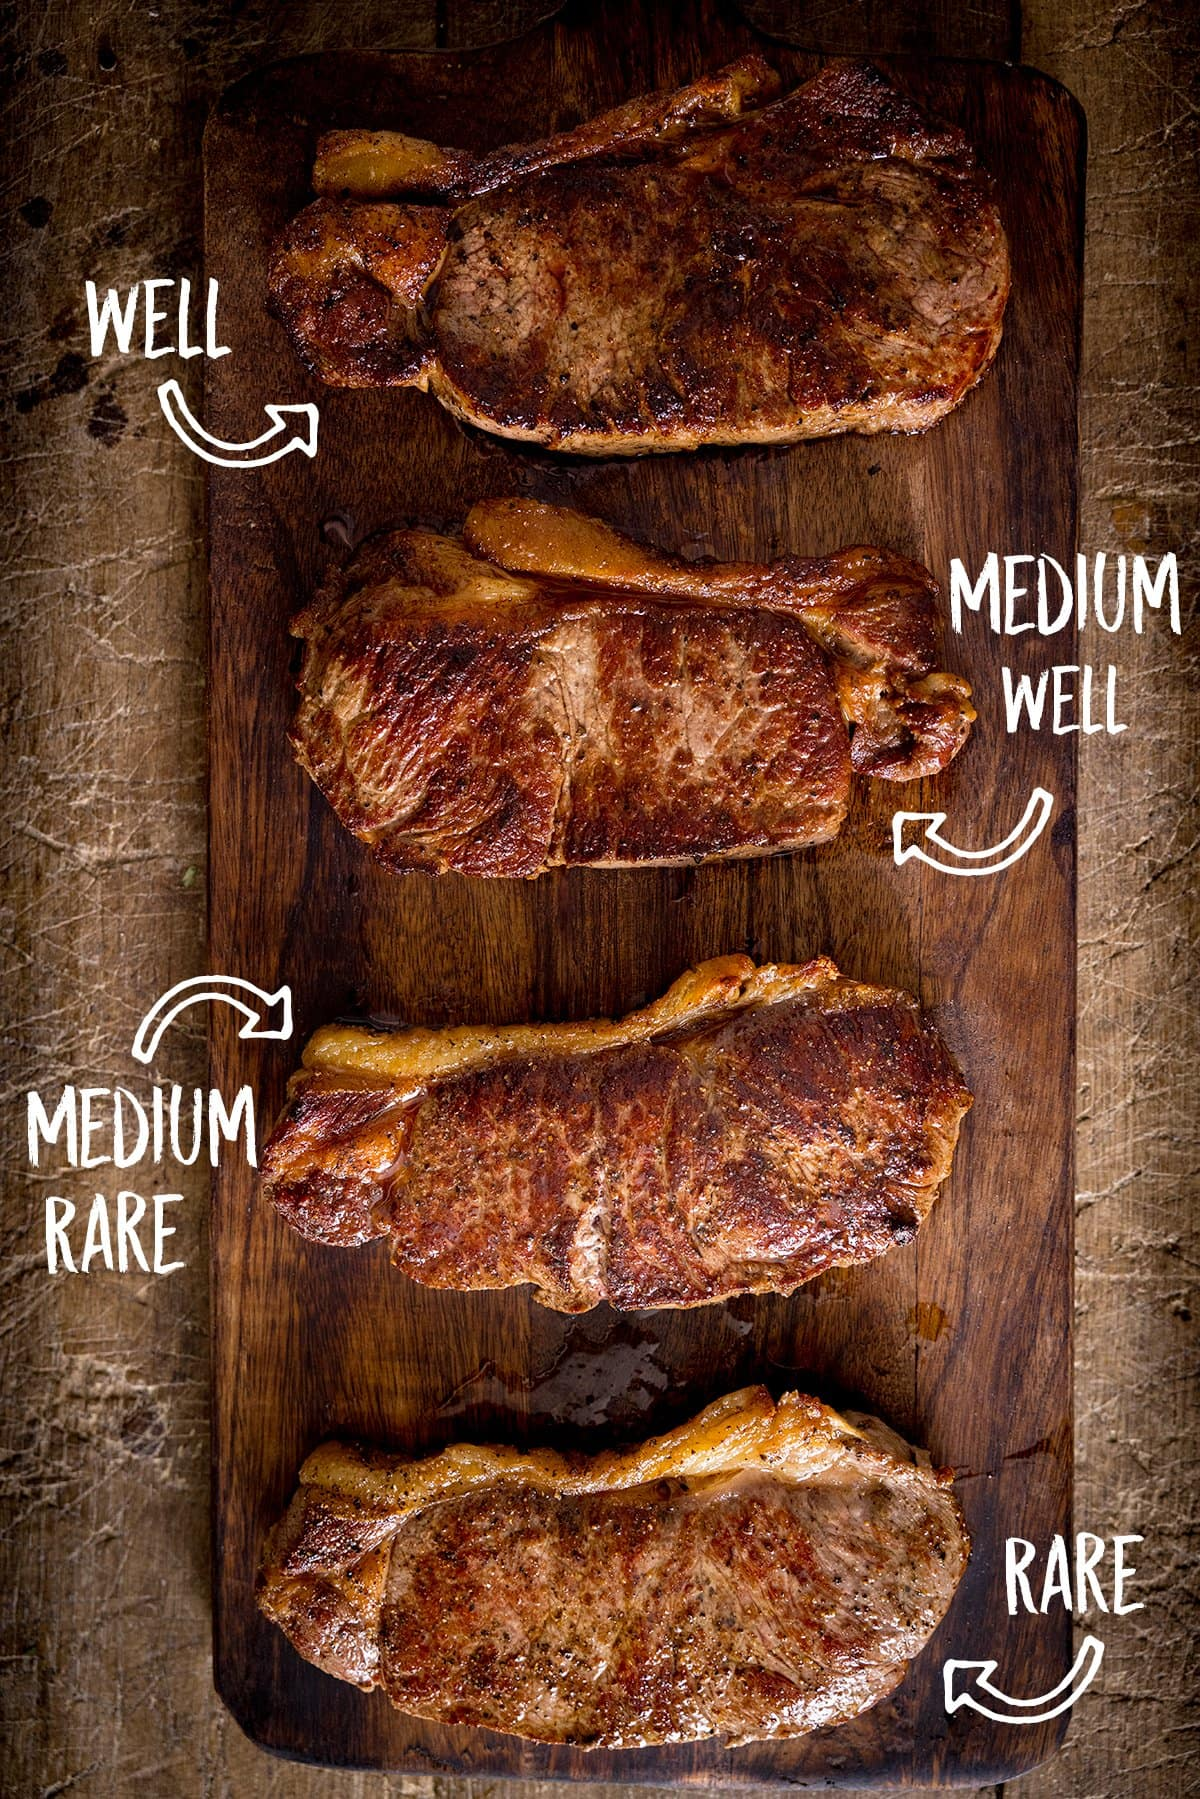 Overhead picture of 4 cooked steaks on a wooden board showing 4 different levels of cooking labelled well, medium well, medium rare and rare.